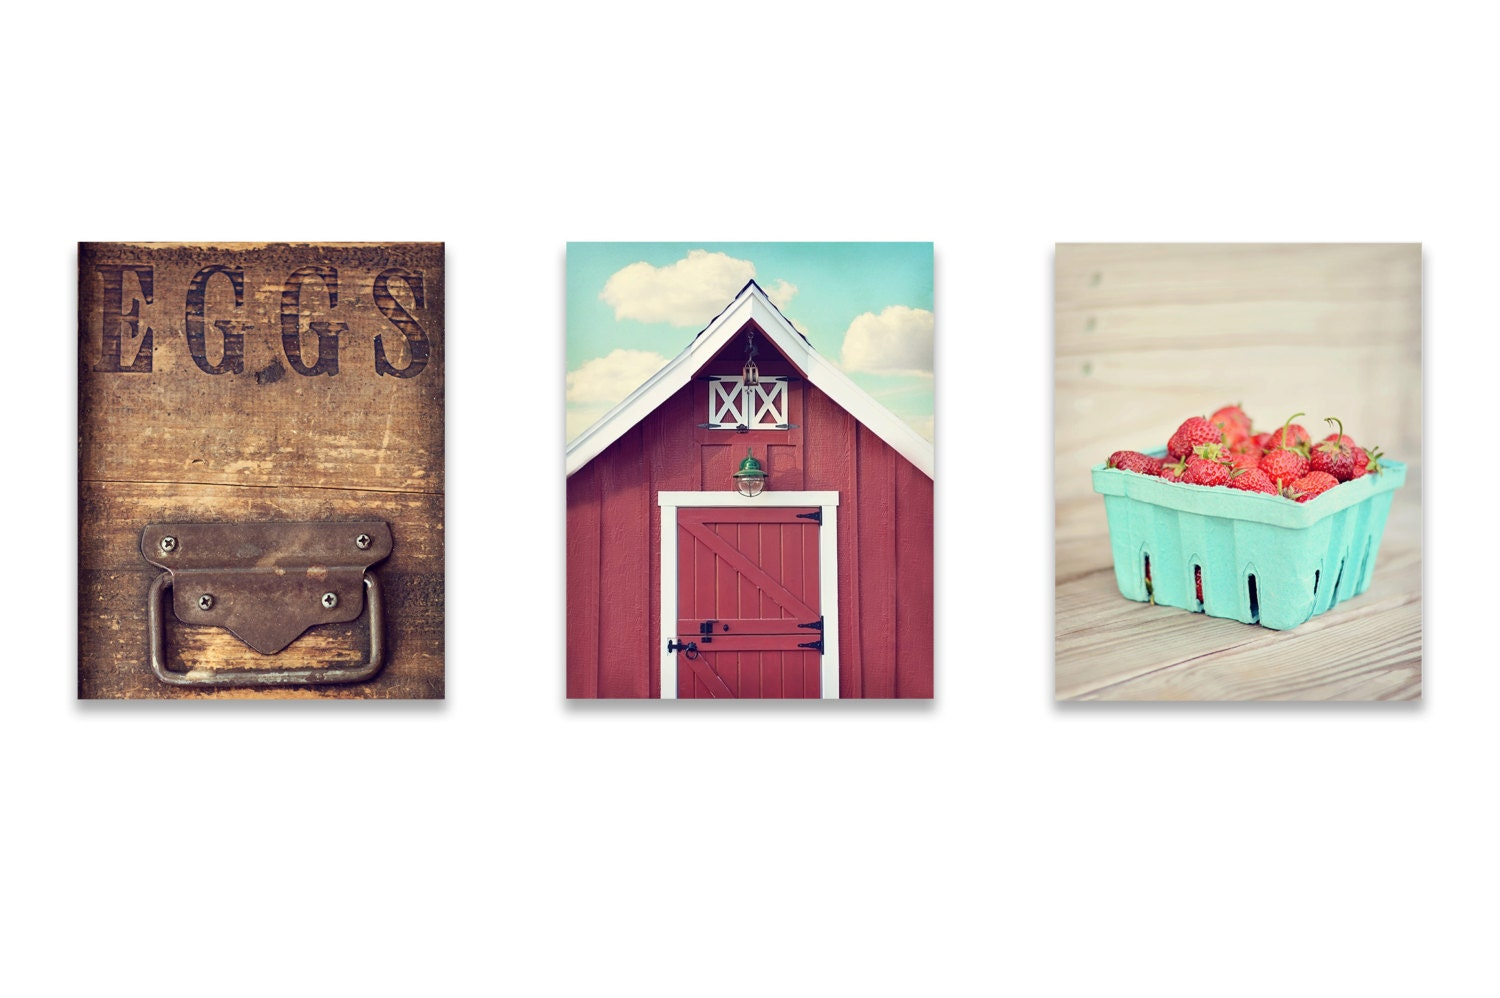 Wall Decor For Rustic Kitchen : Kitchen wall art rustic decor set of by